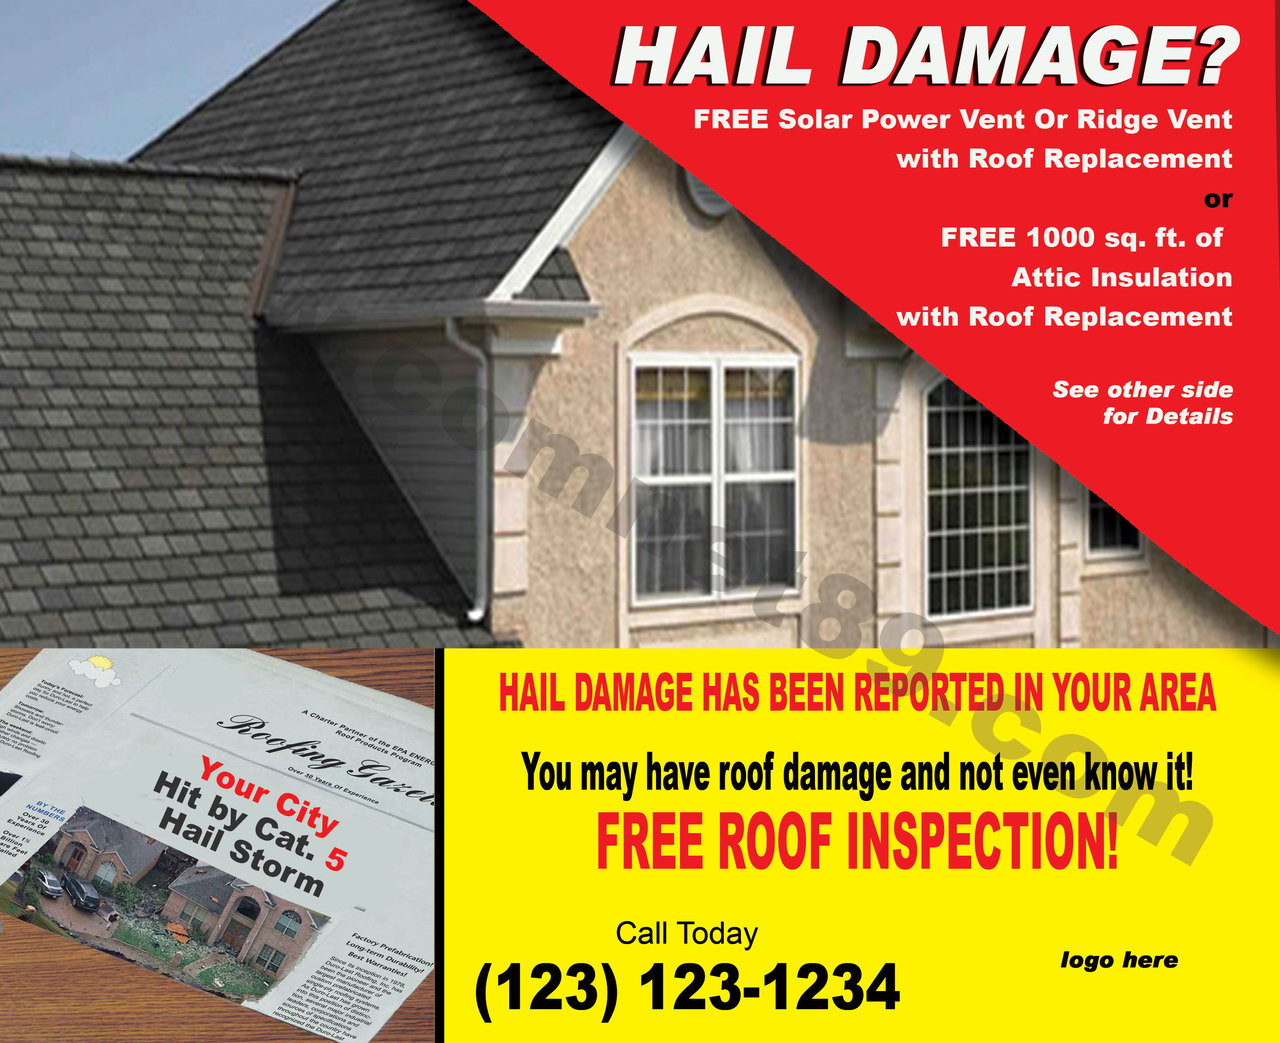 Hail Damage 08 EDDM Postcard - 6.5 x 8 - Front